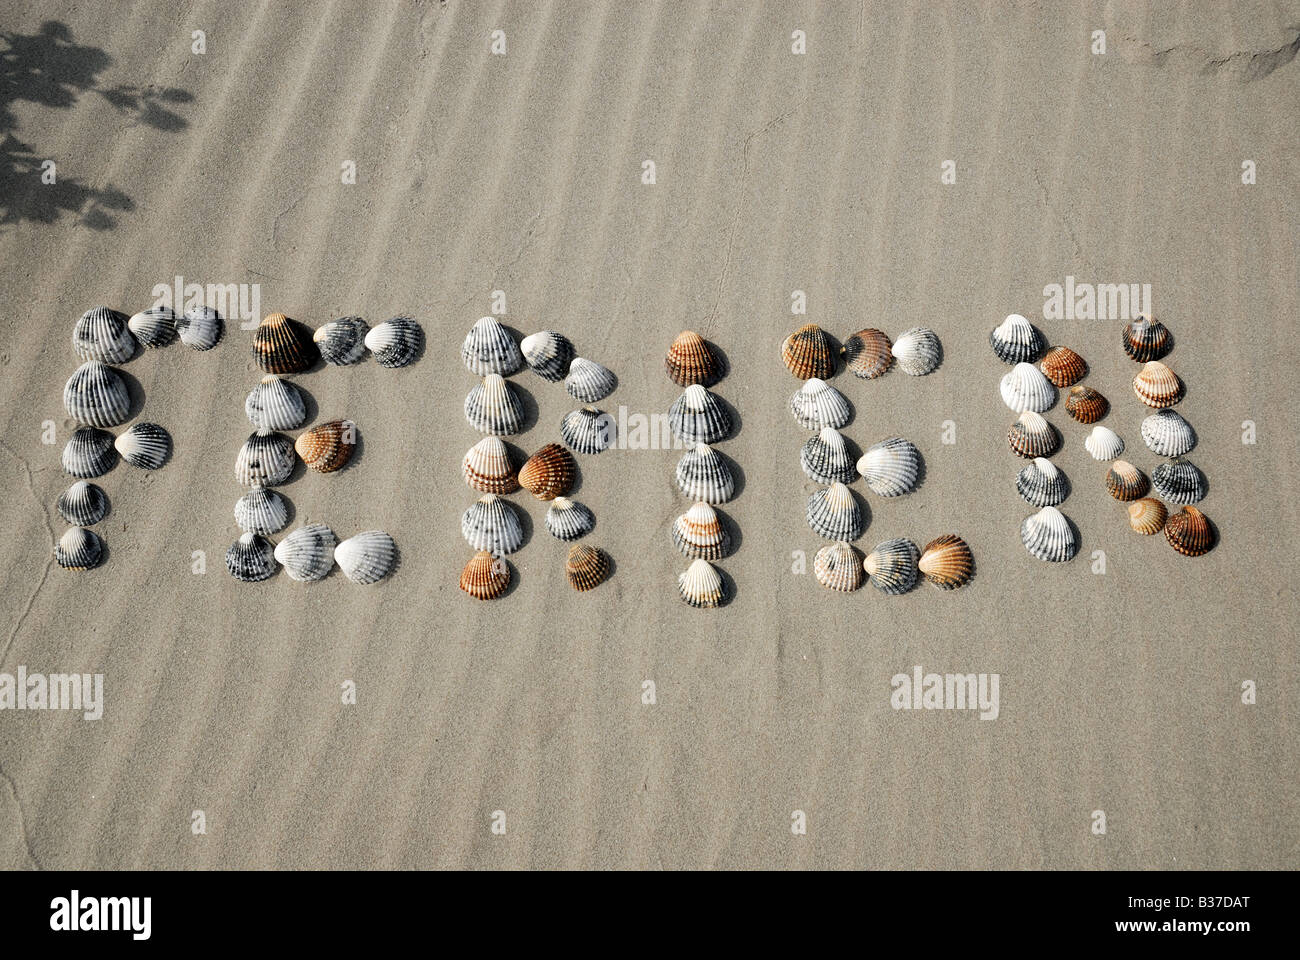 The word Ferien - German for Vacation, made of seashells on the beach - Stock Image